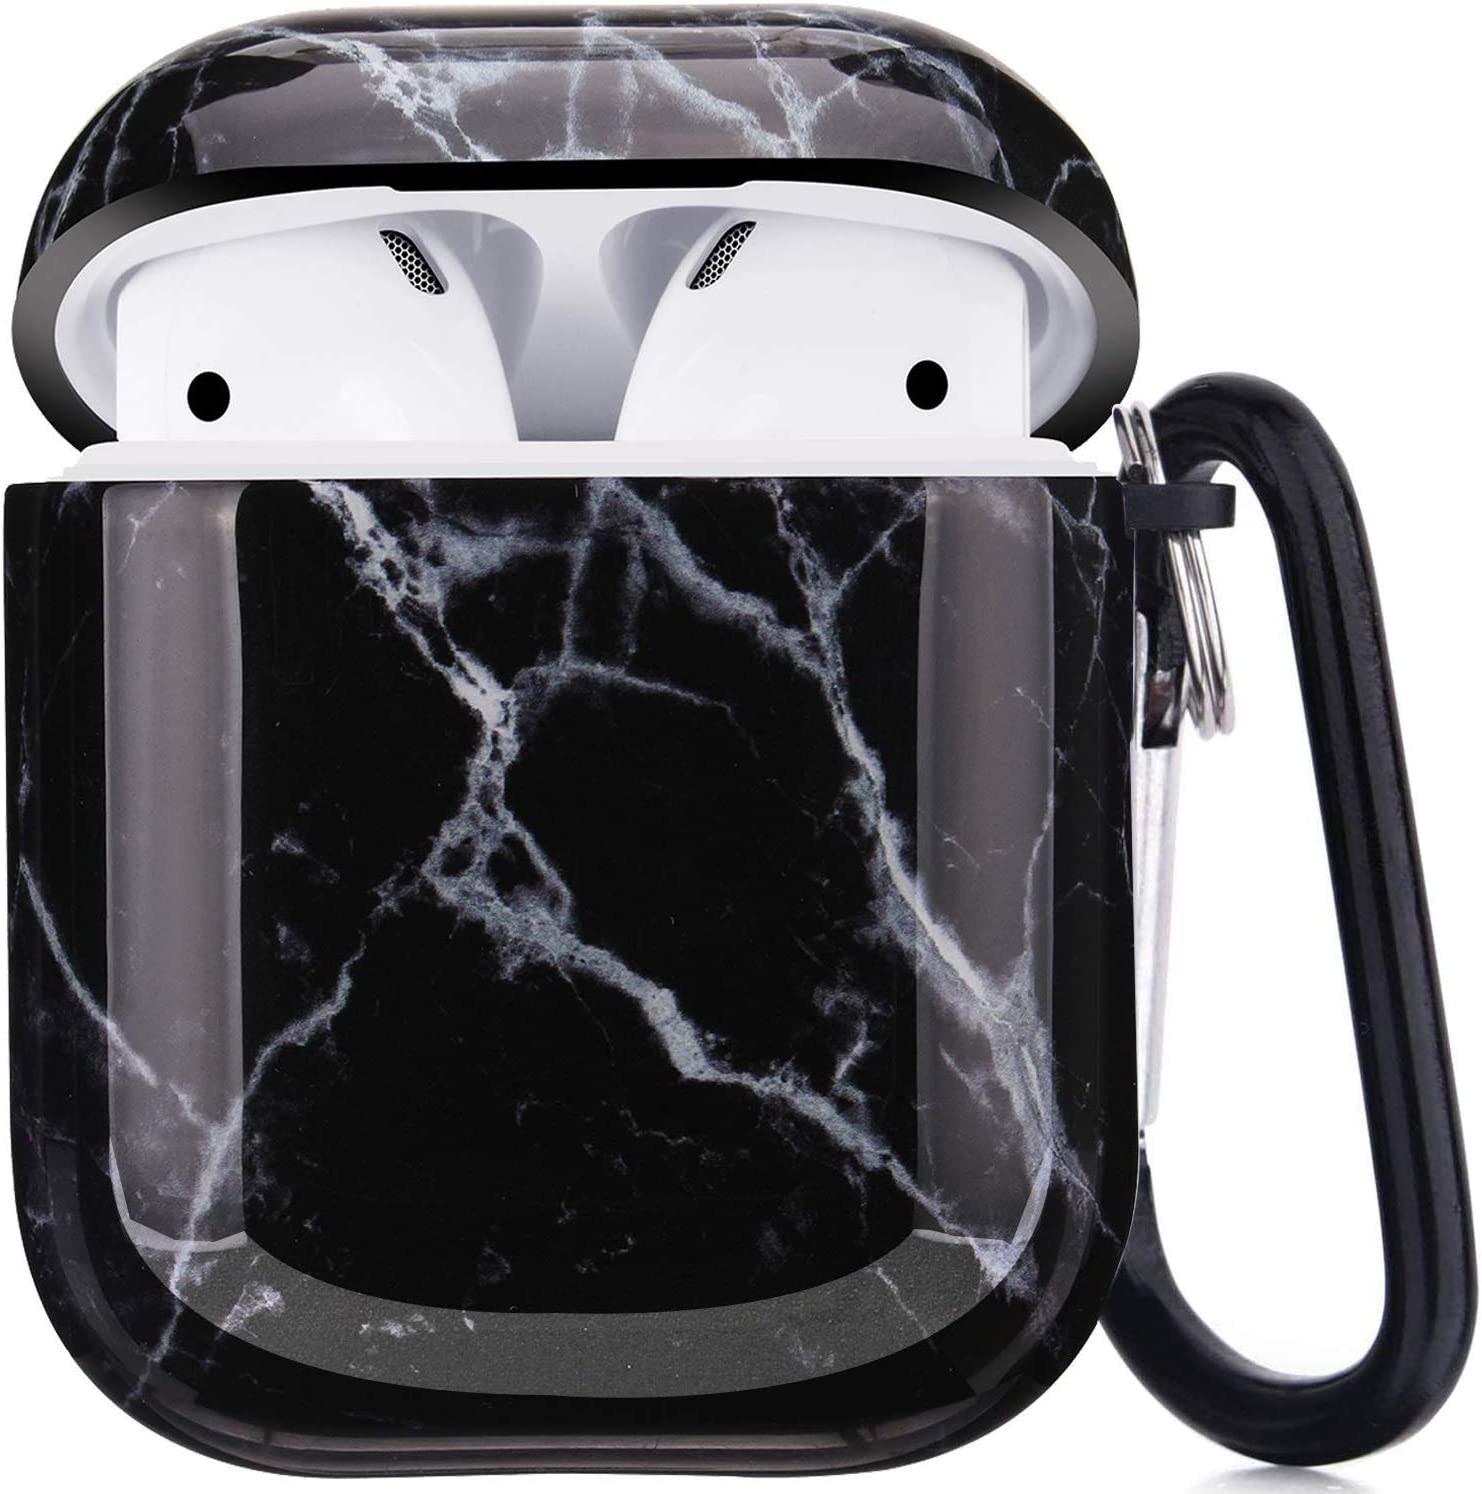 Troniker Stylish AirPods Case, Black Marble AirPods Protective Case Cover Designed forApple AirPods 1st/2nd Durable Shockproof Drop Proof Case for AirPods Charging Case with Anti-Lost Keychain